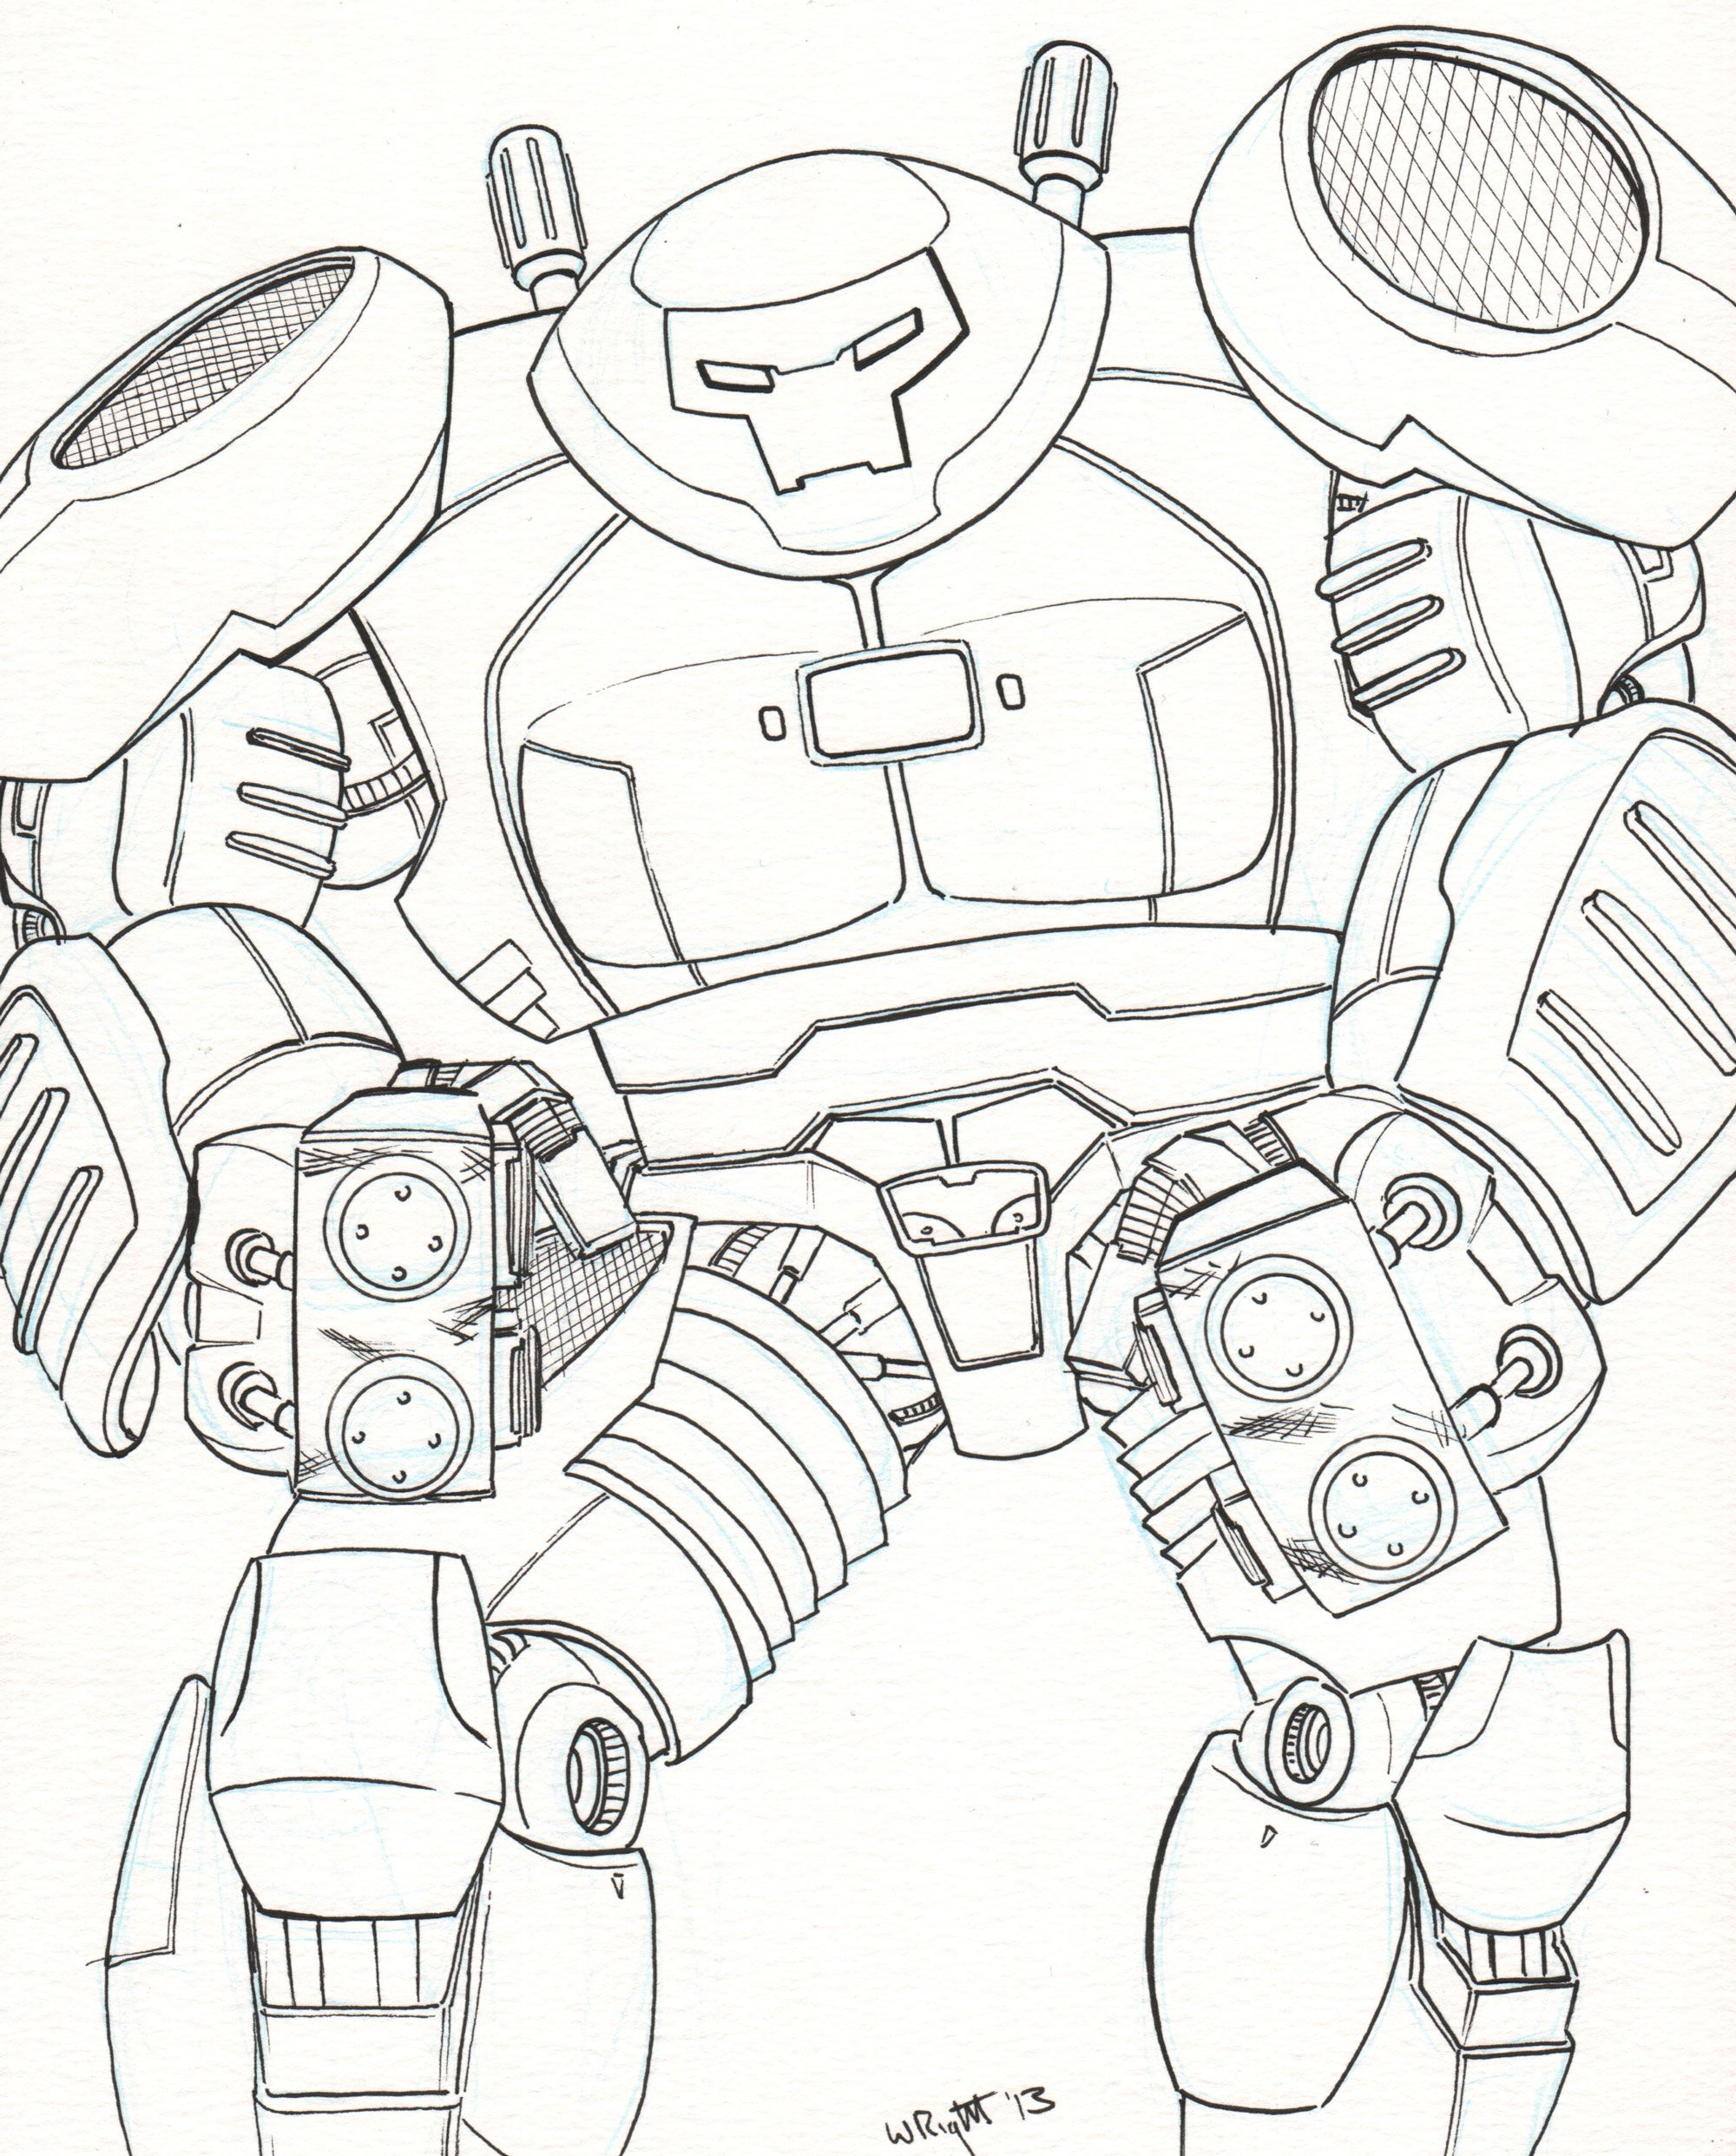 Iron Man Hulkbuster Vs Hulk Coloring Pages